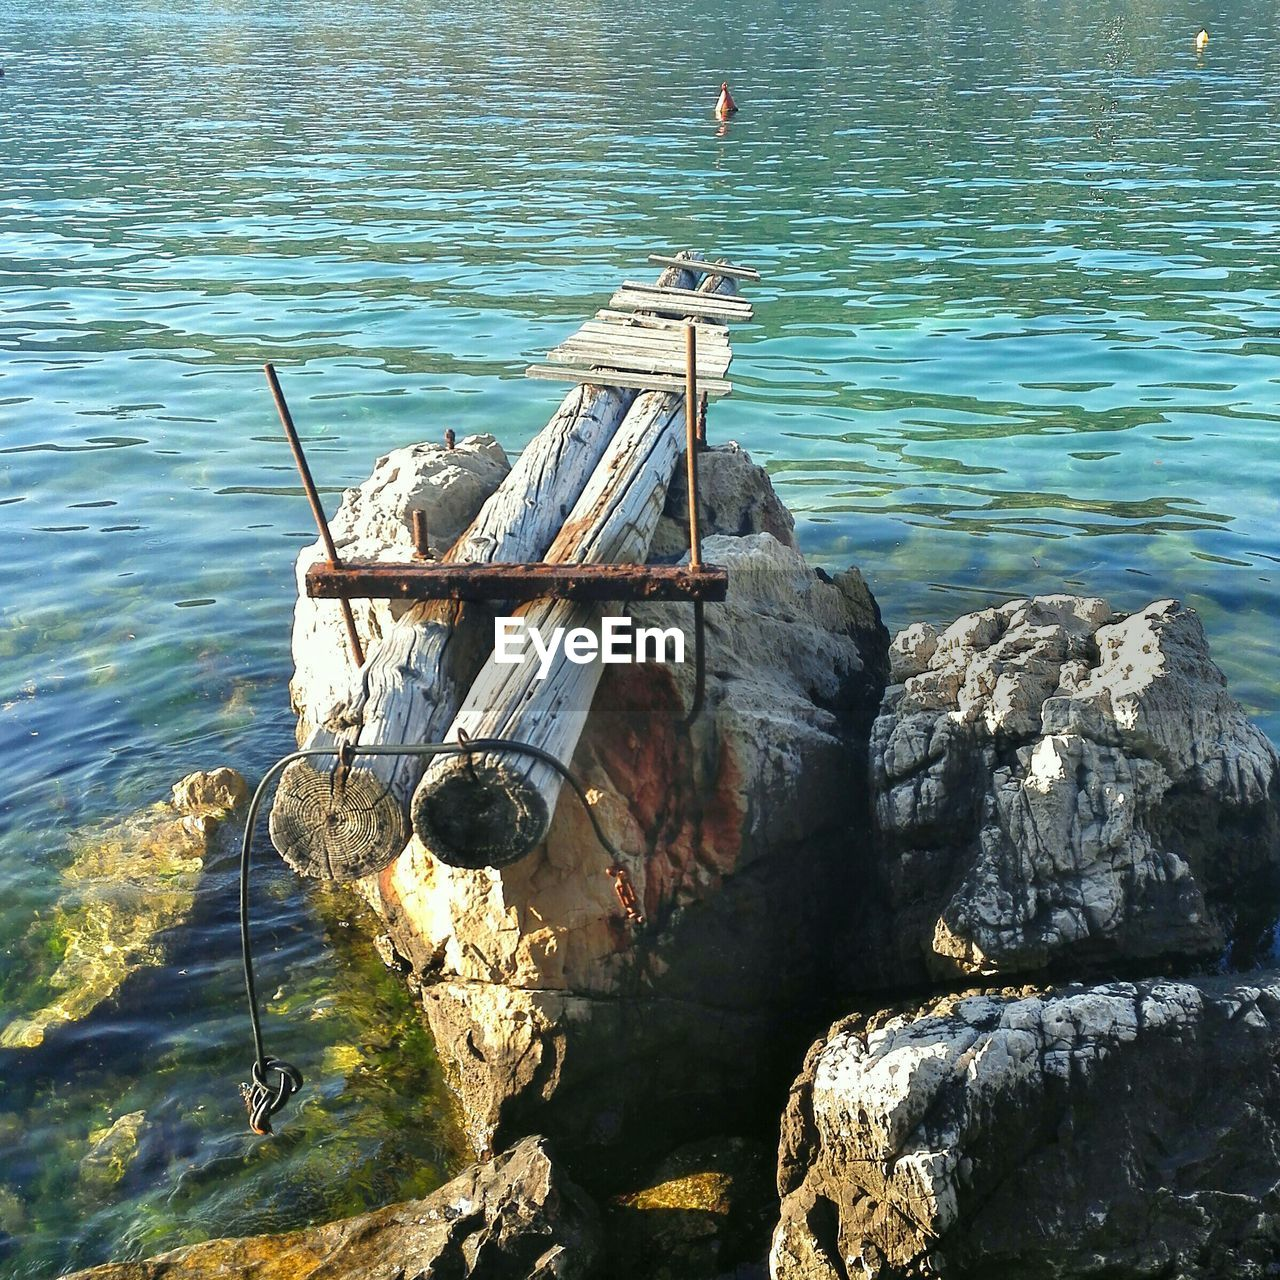 water, day, high angle view, rock - object, nature, no people, wood - material, outdoors, sunlight, lake, beauty in nature, nautical vessel